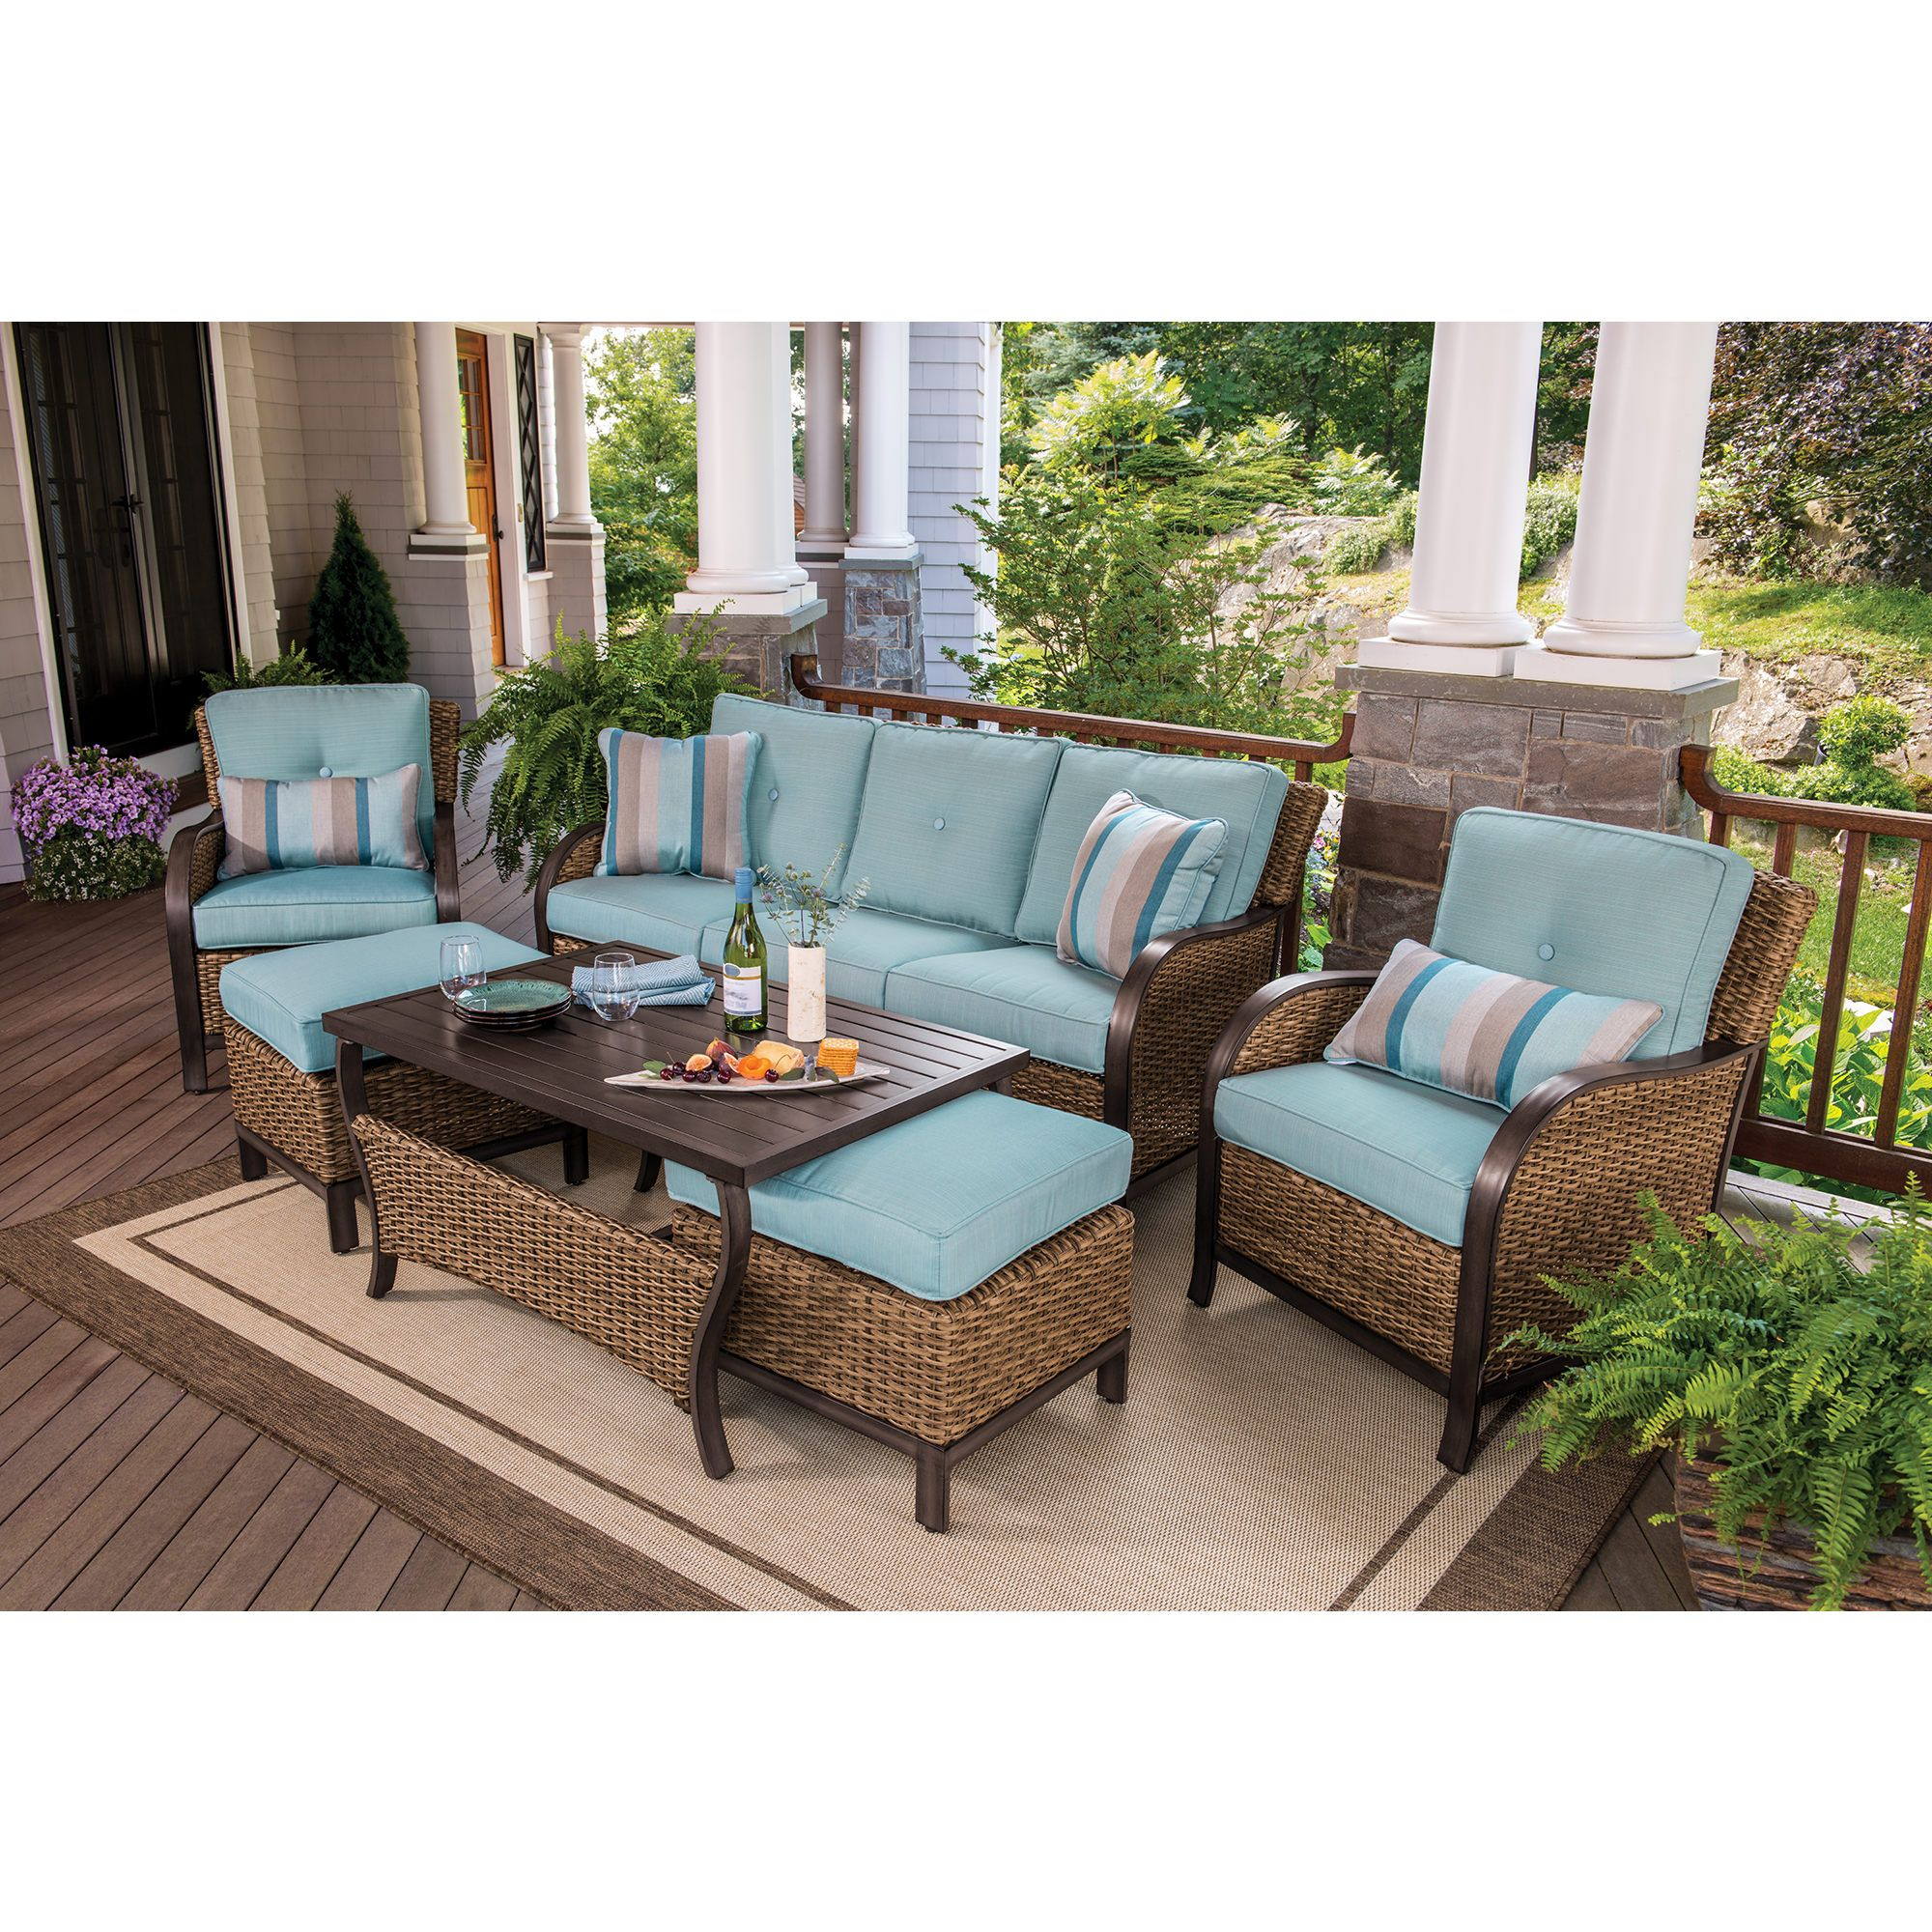 chat aluminum cast deep seating wicker all giovanna furniture luxury the weather patio collection set